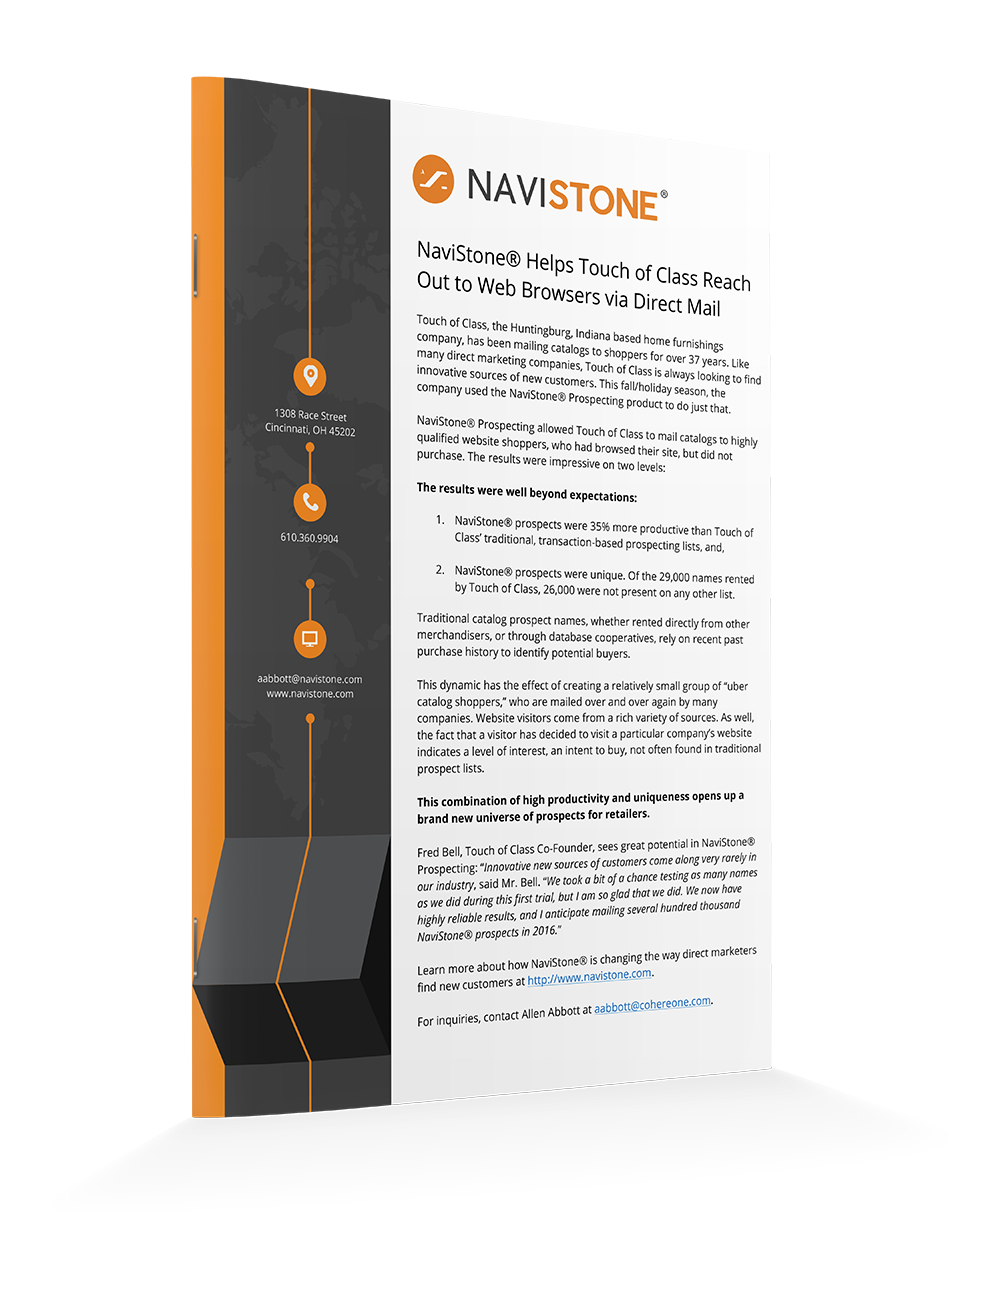 NaviStone® Helps Touch of Class Reach Out to Web Browsers via Direct Mail